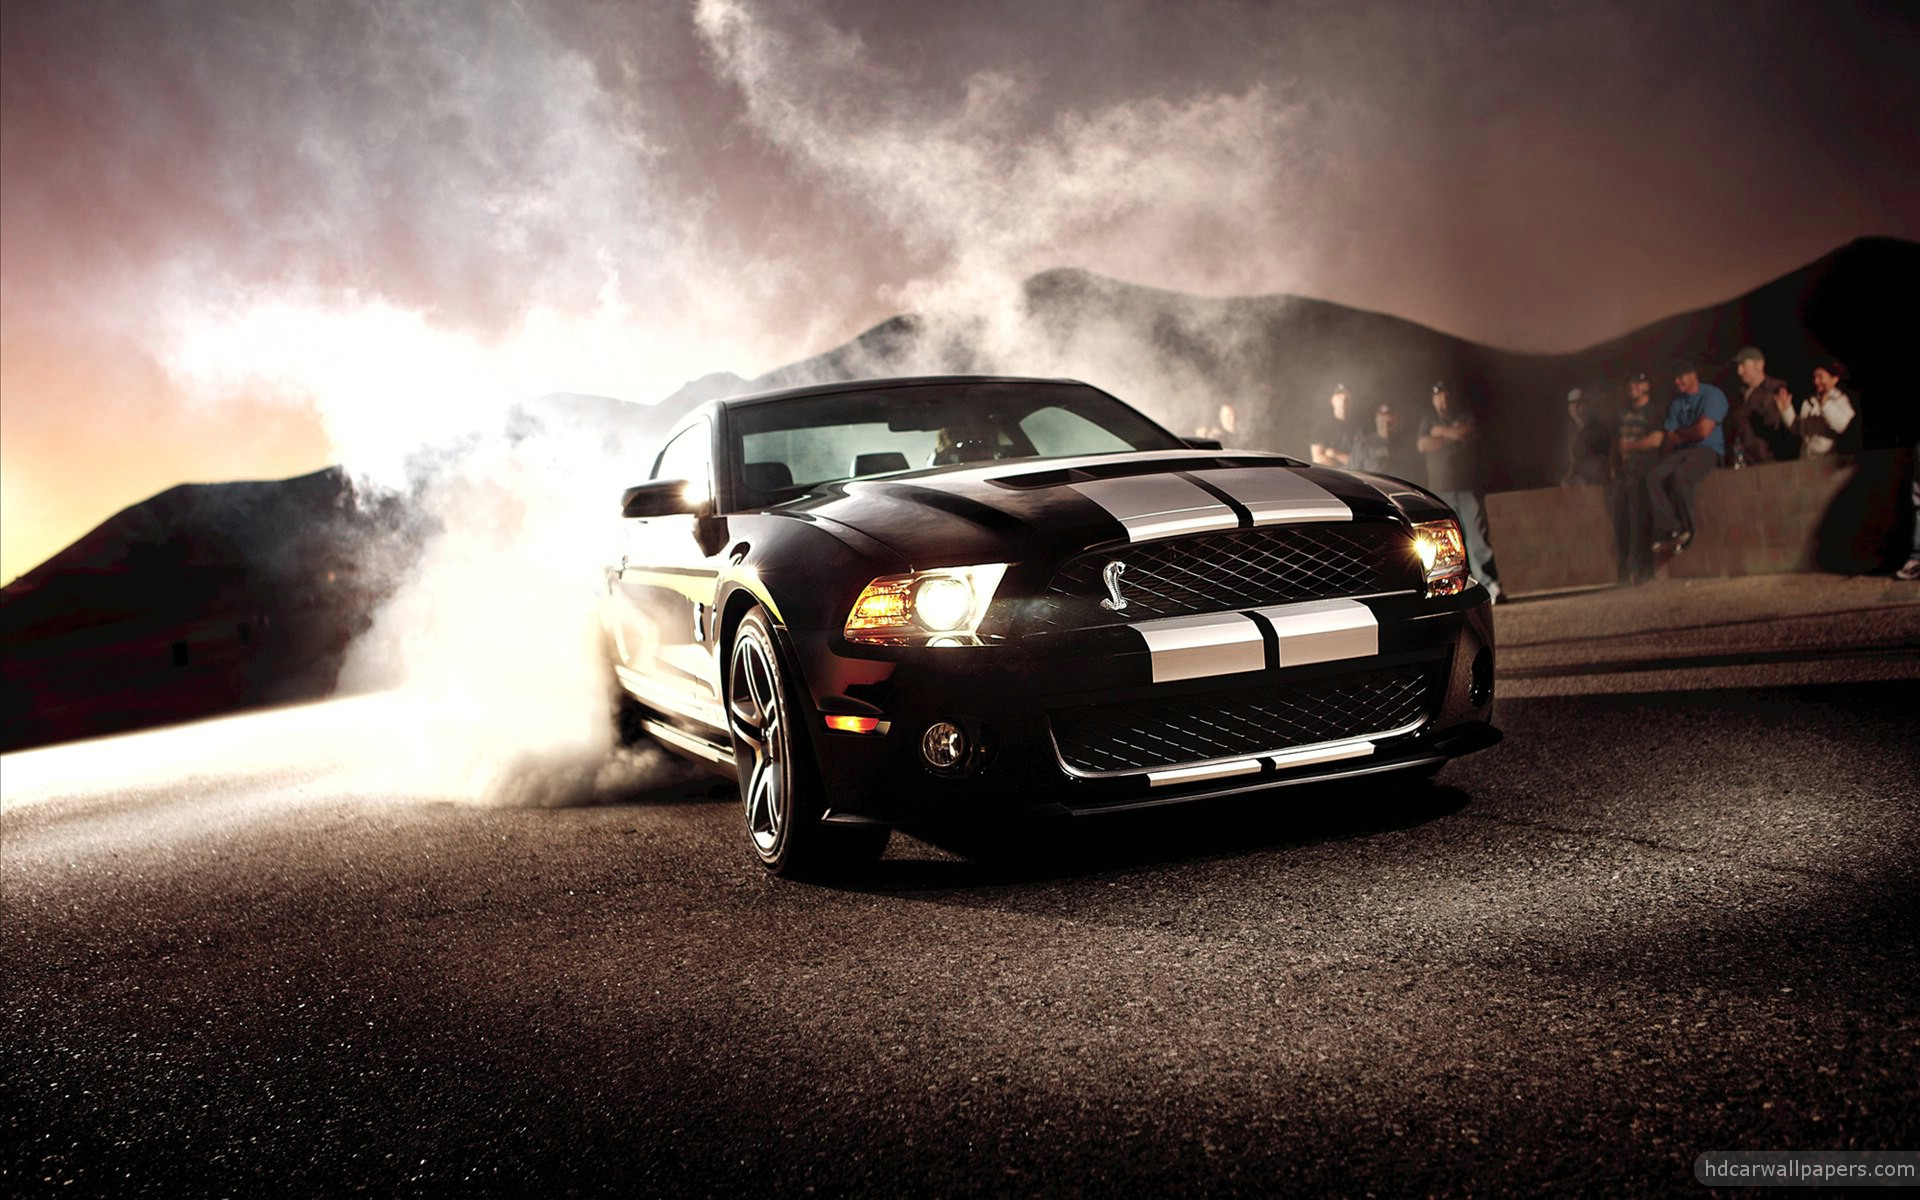 Ford shelby gt500 2012 wallpaper hd car wallpapers